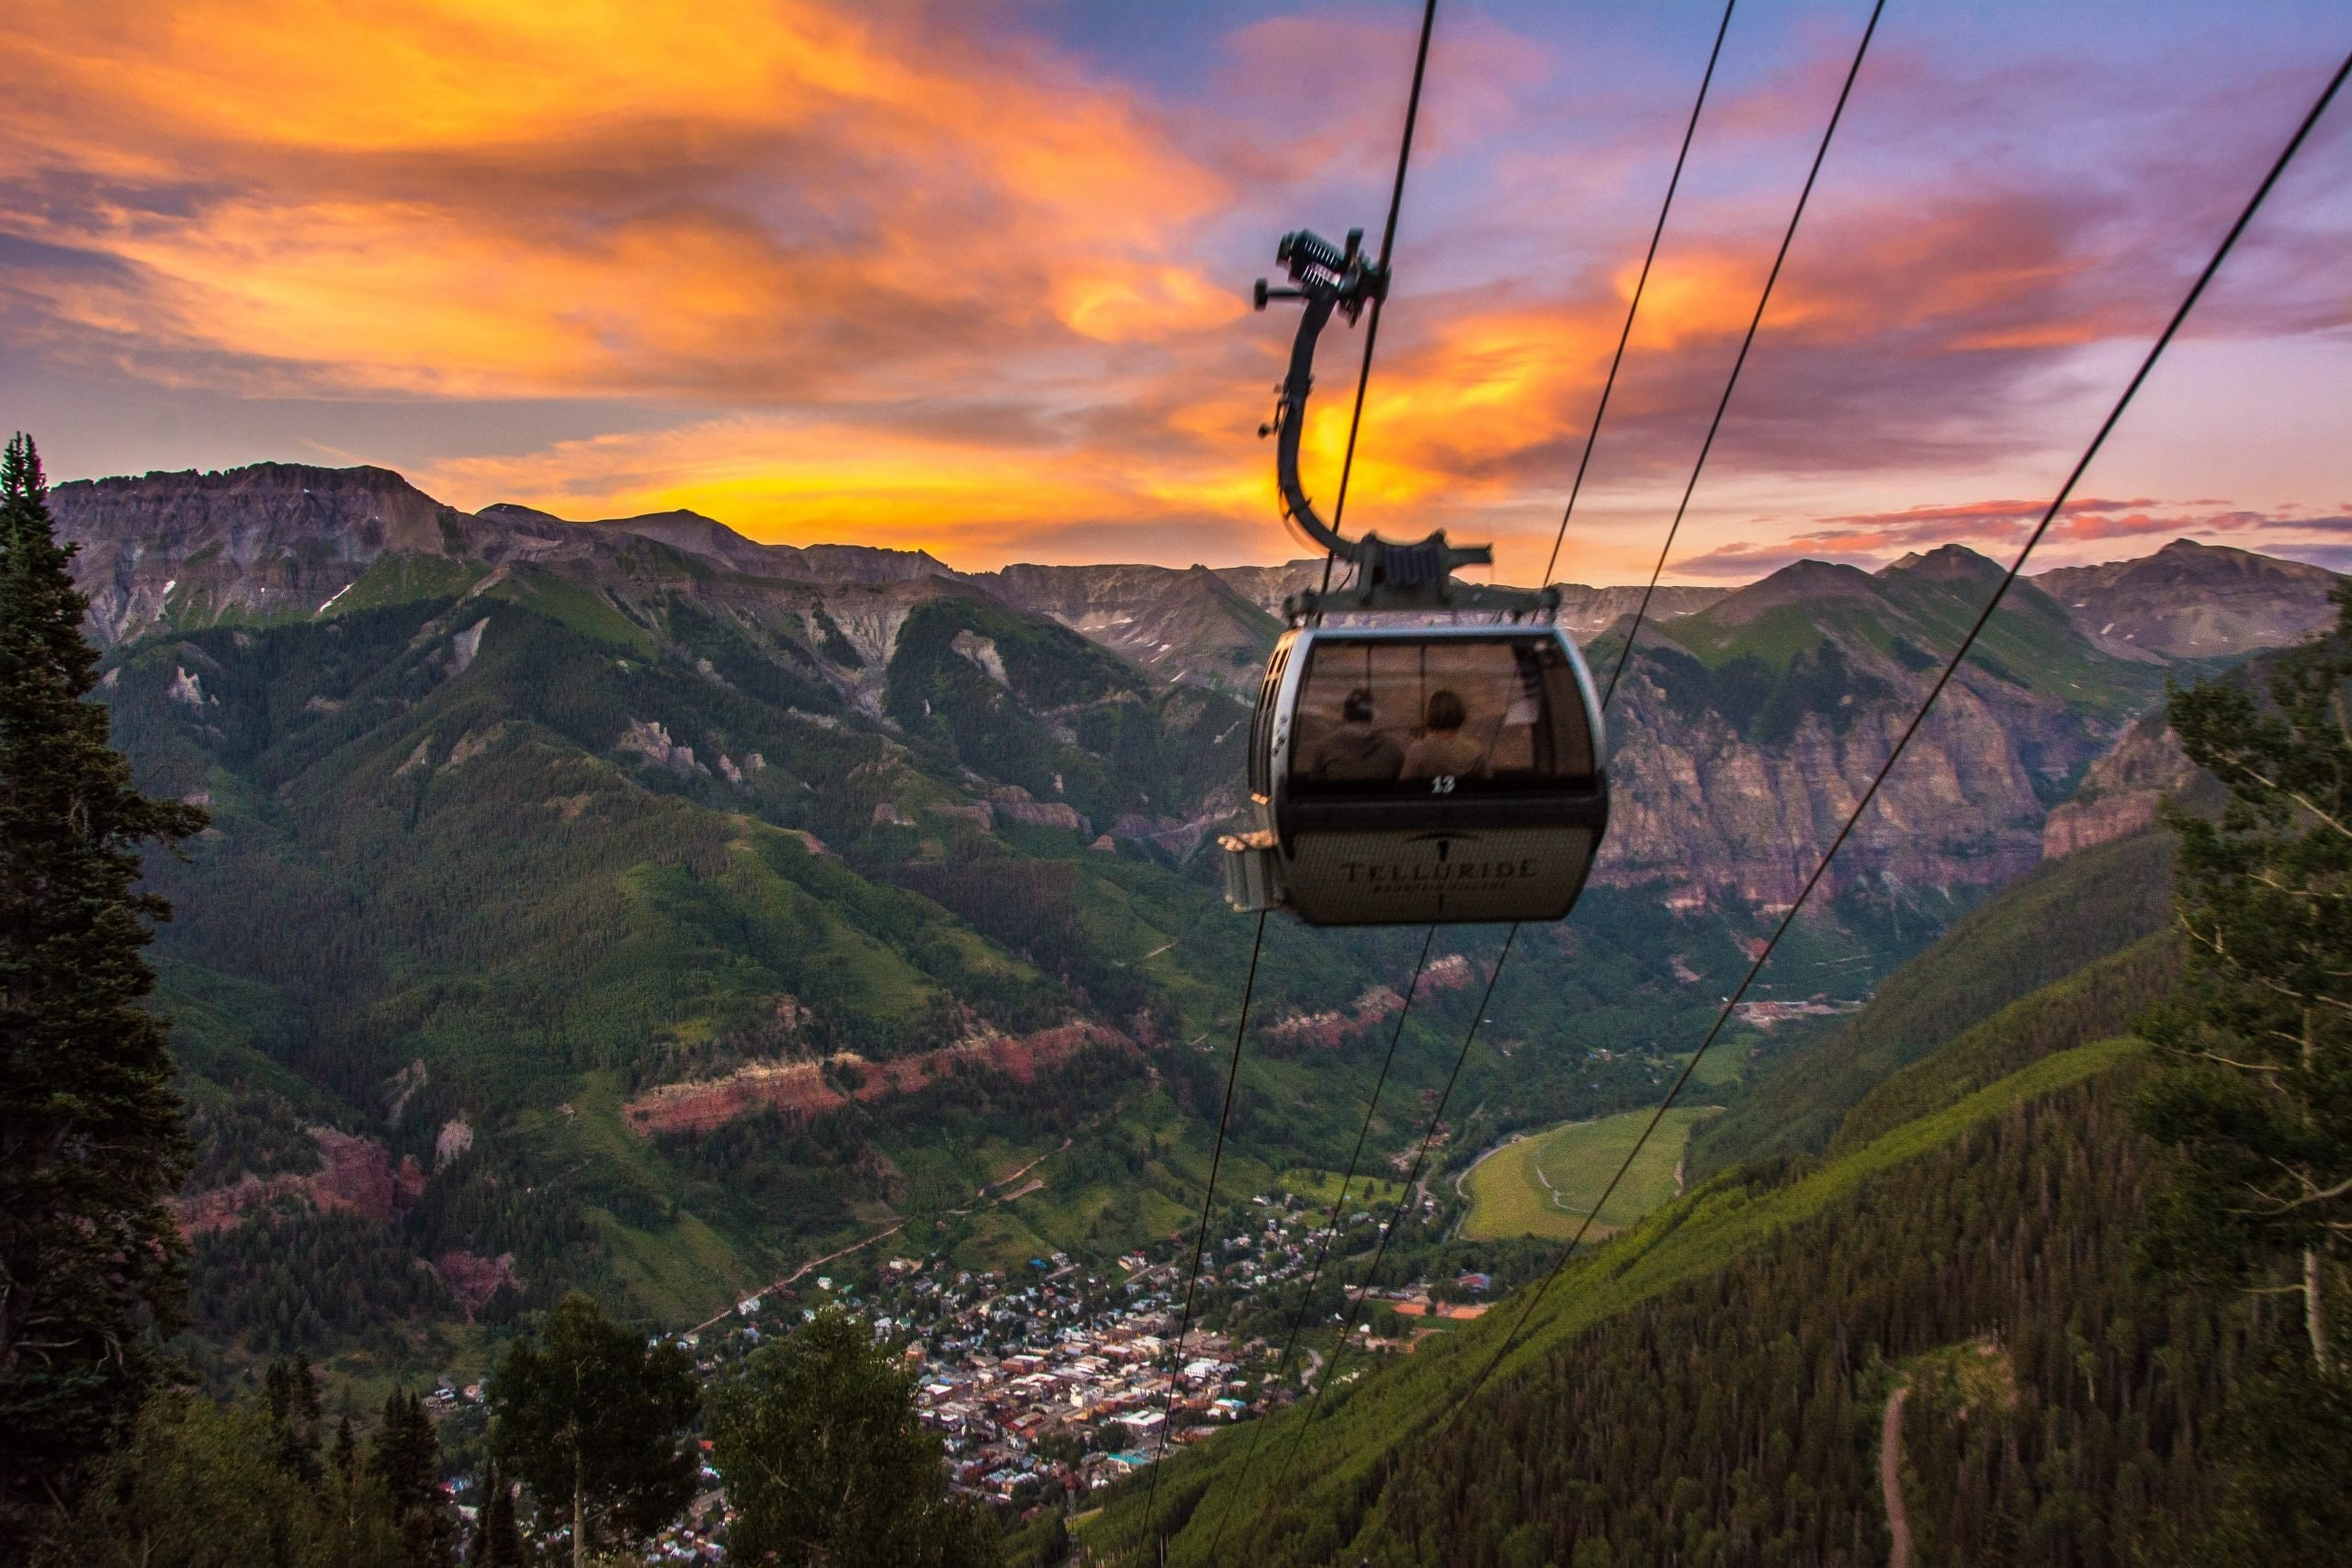 A gondola looking down over Telluride with a beautiful sunset in the background.